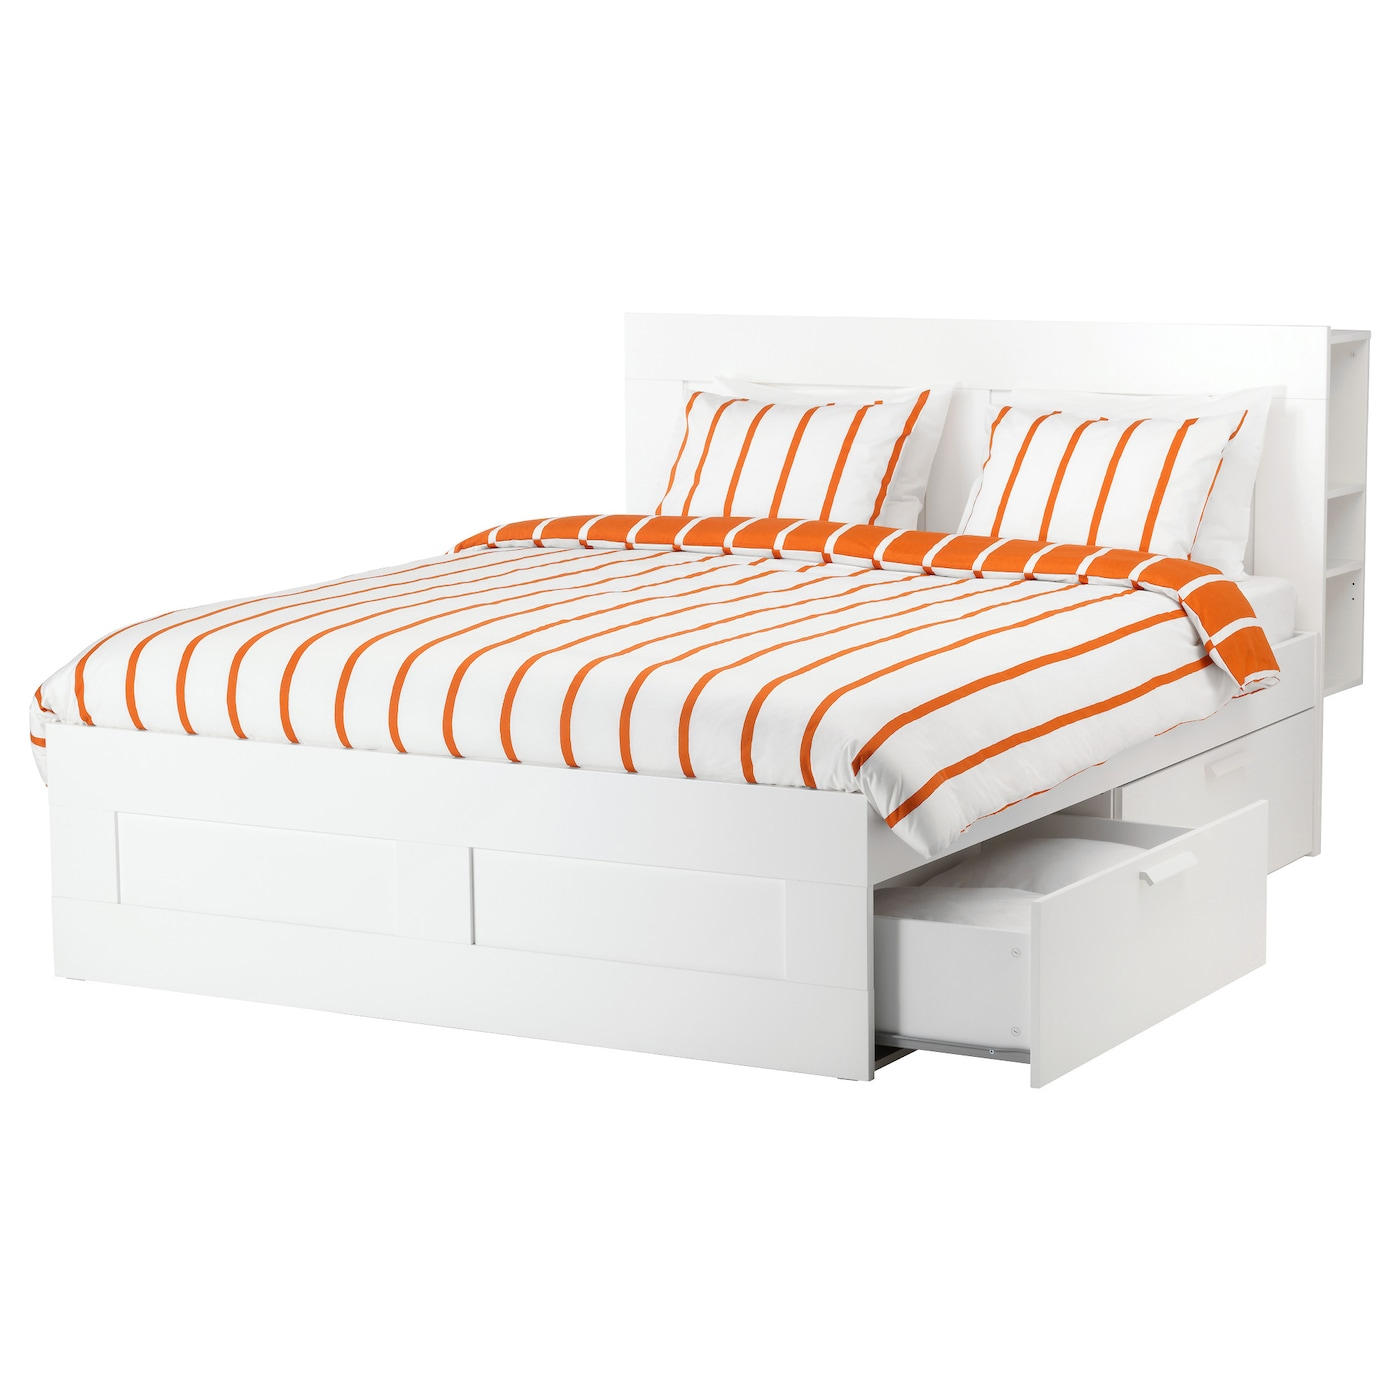 brimnes cadre de lit rangement t te de lit blanc l nset 180x200 cm ikea. Black Bedroom Furniture Sets. Home Design Ideas